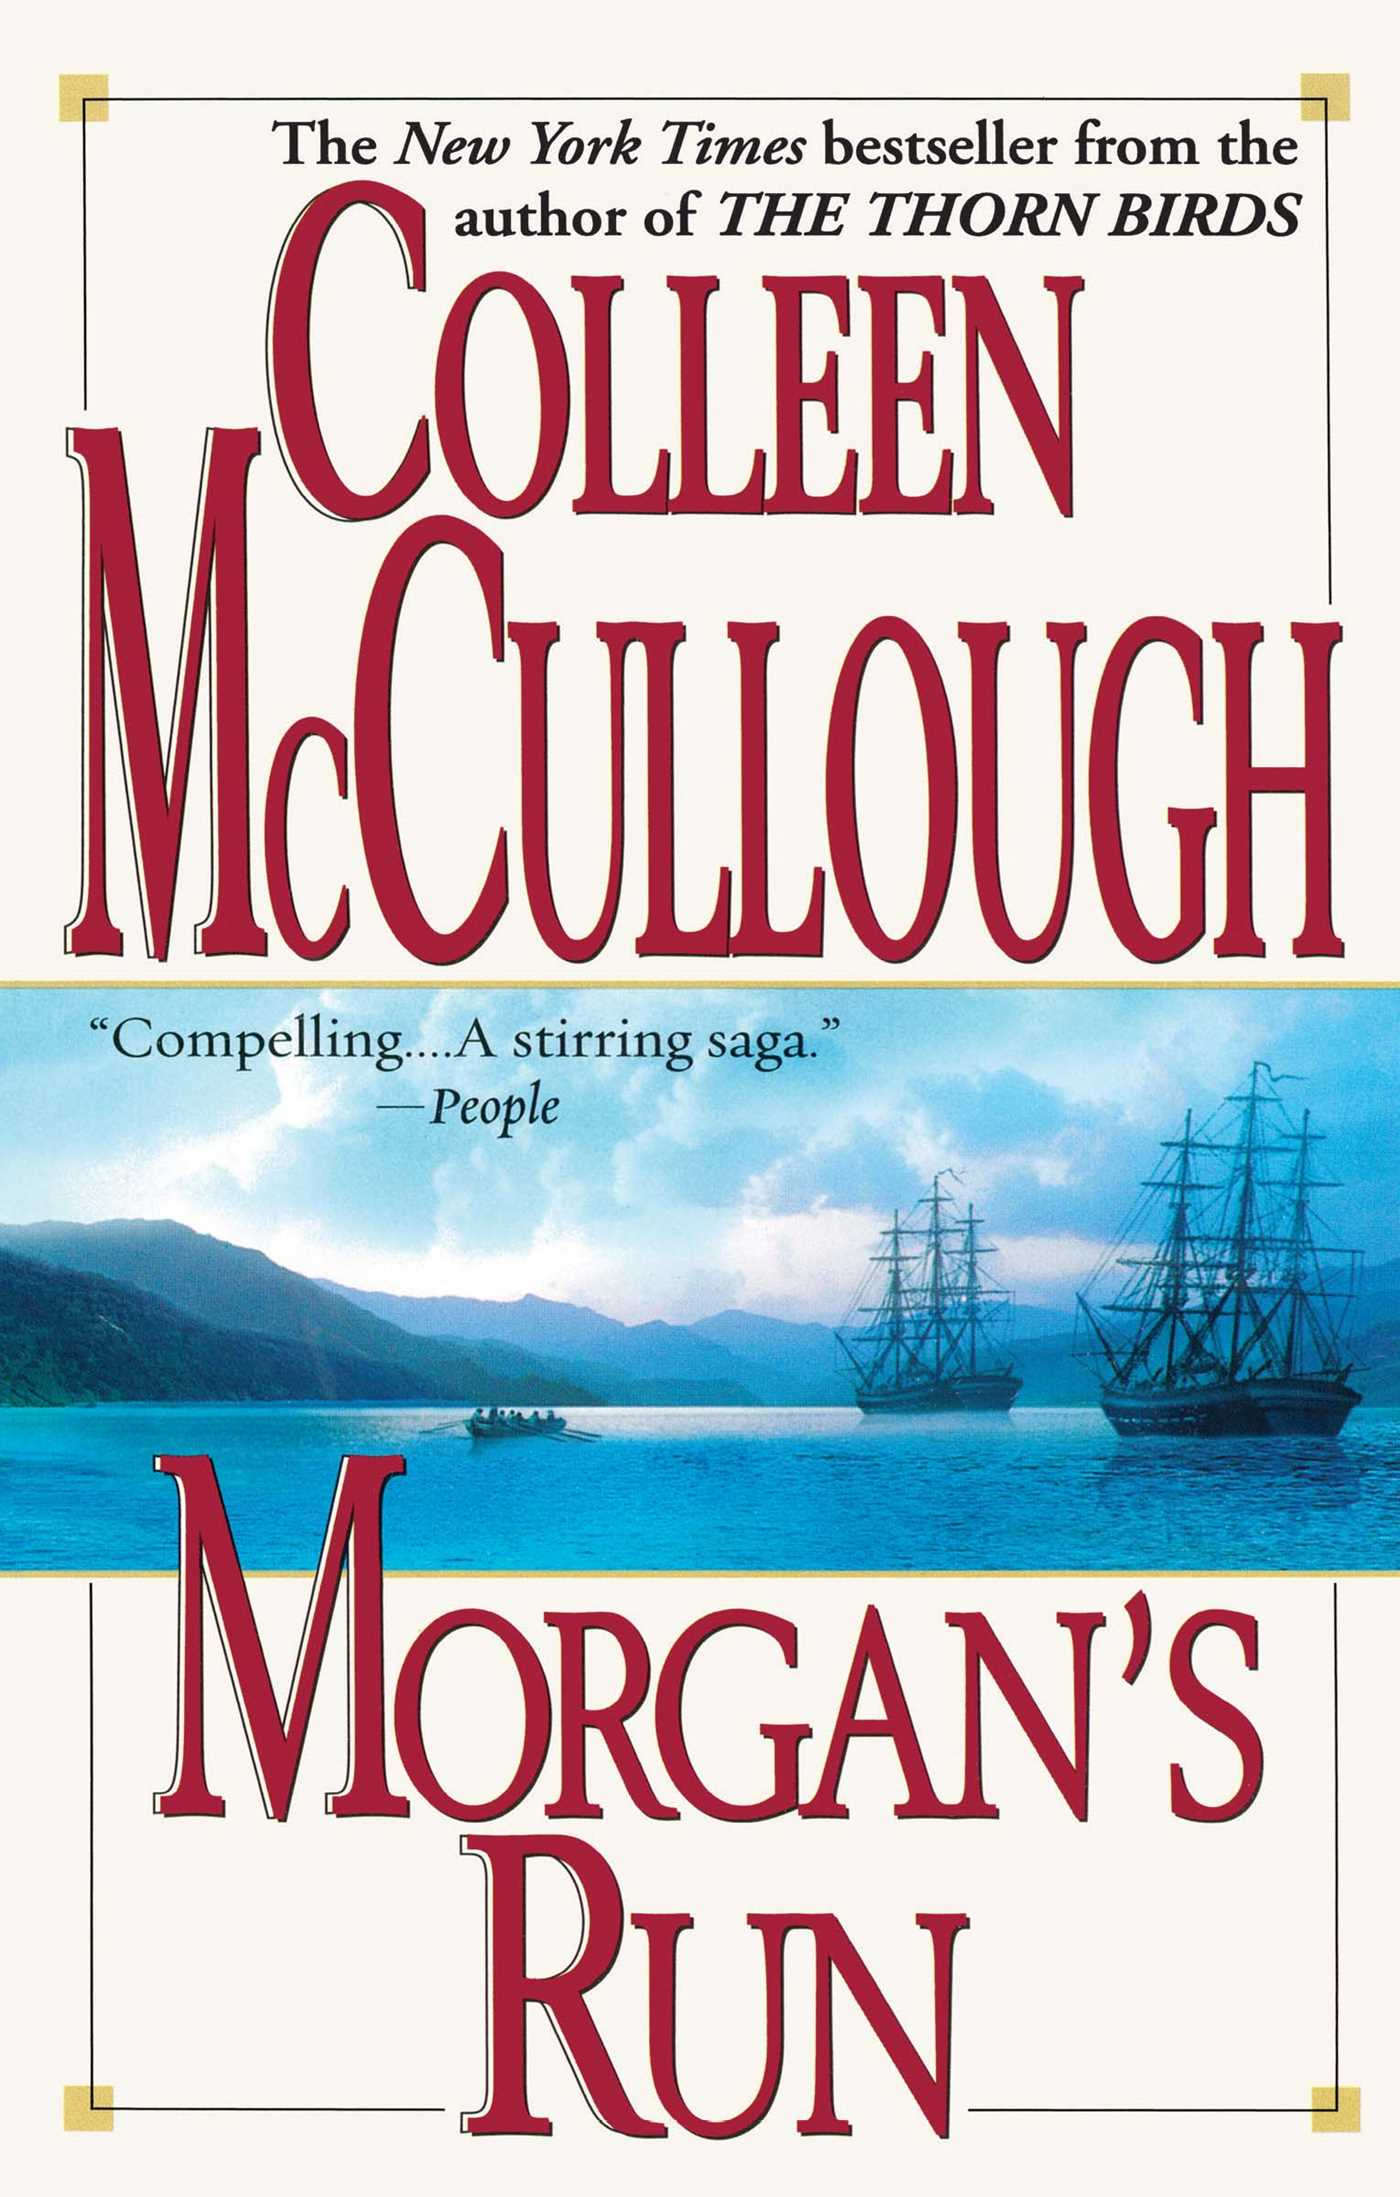 Morgans-run-9780743214674_hr